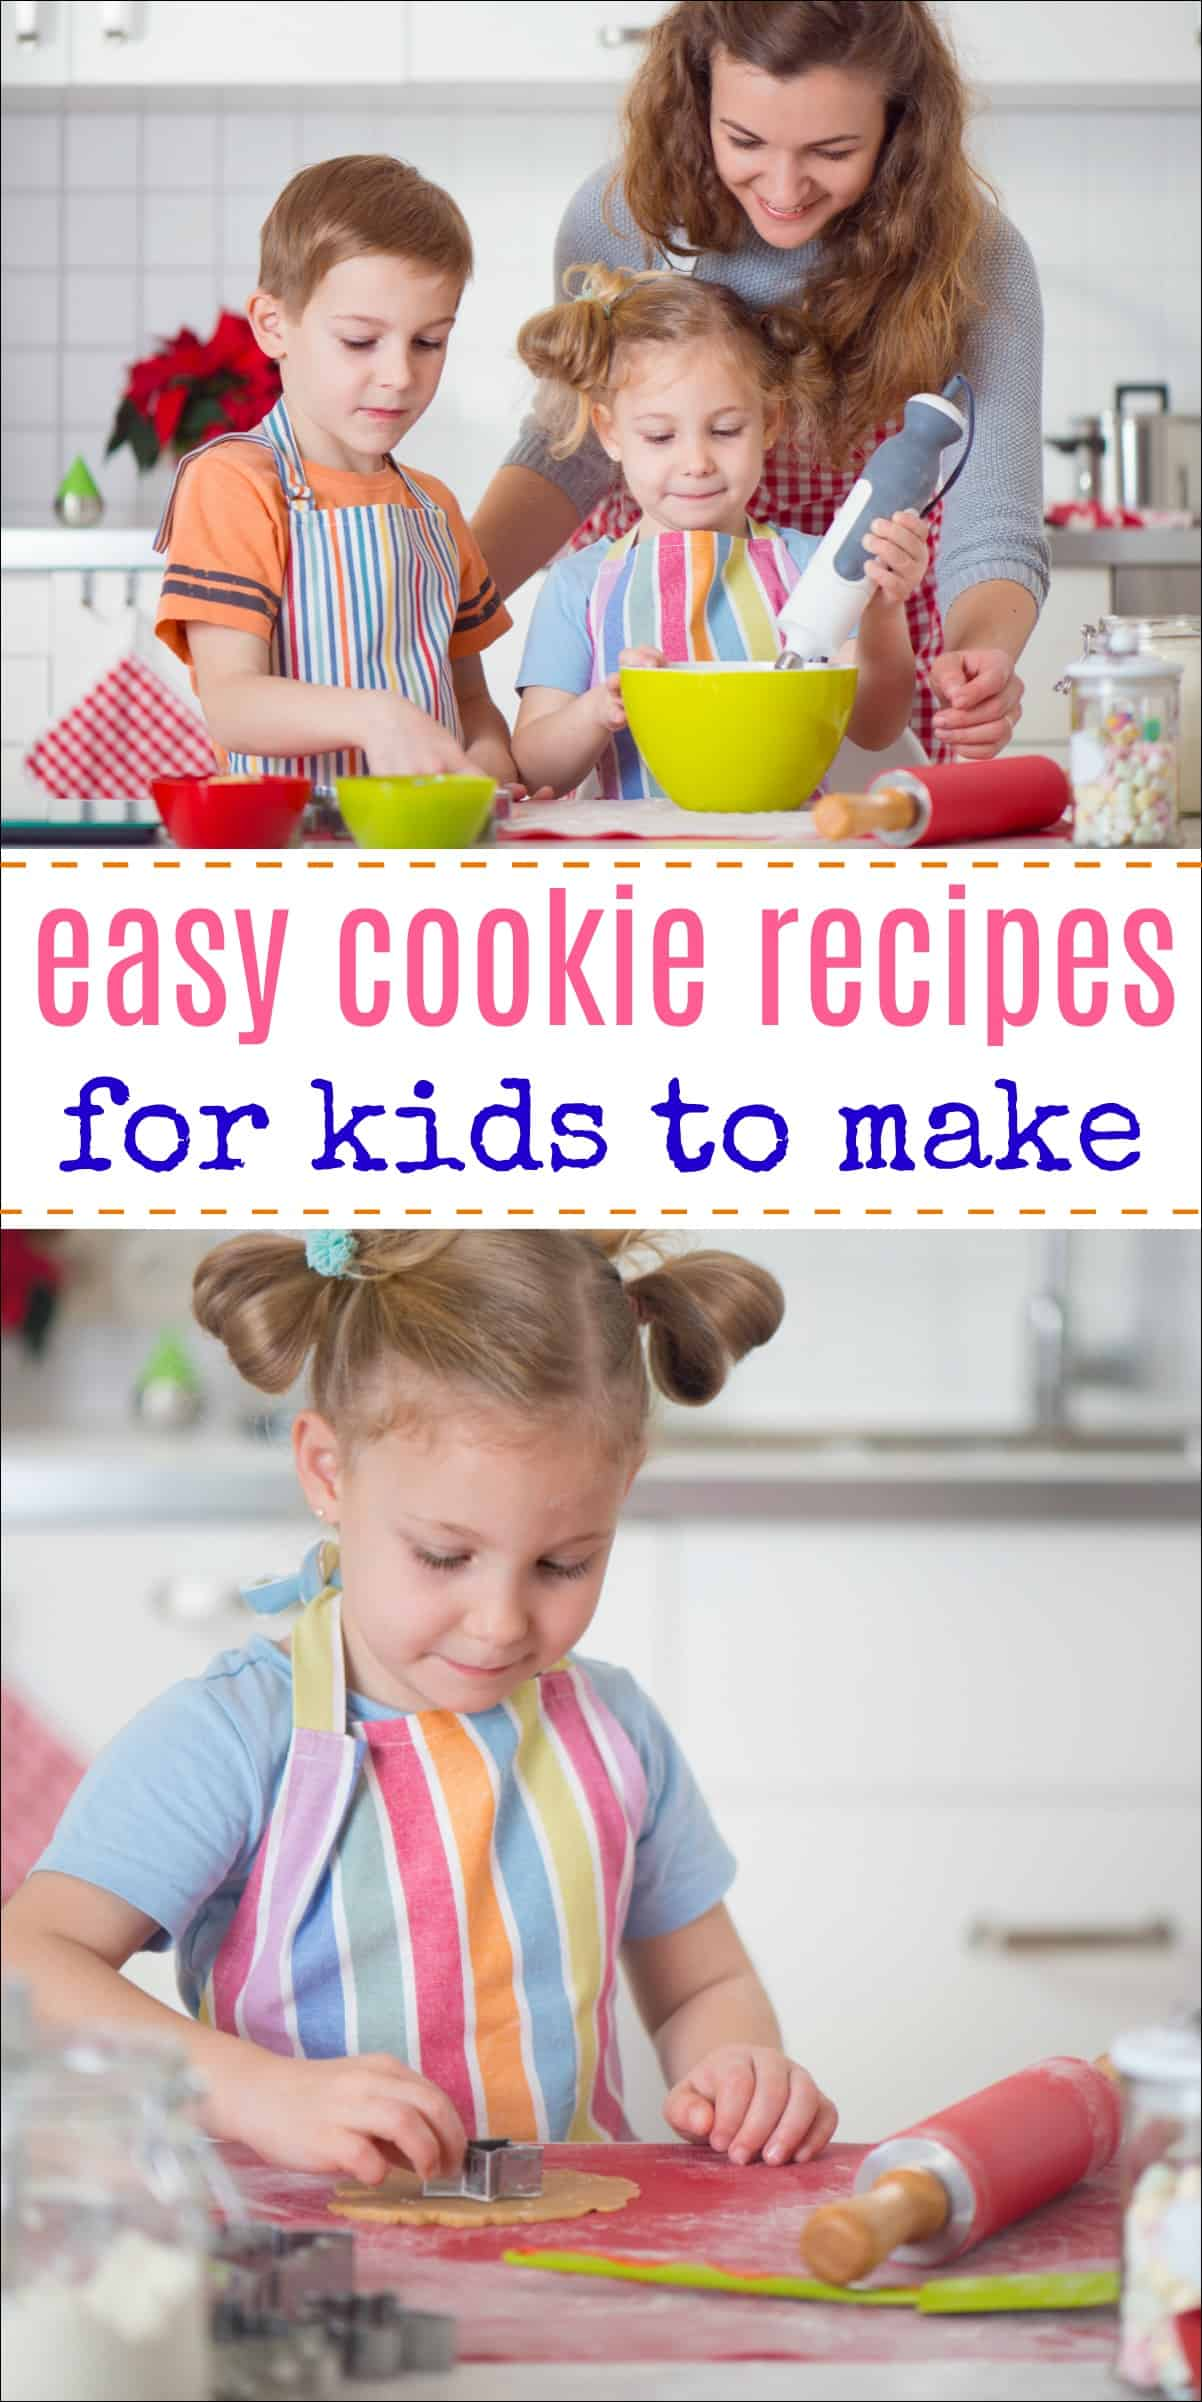 Cookie recipes for kids - All of these delicious cookies have been baked by kids. Try them out with your child for a fun bonding experience! #cookies #cookierecipe #bakingwithkids